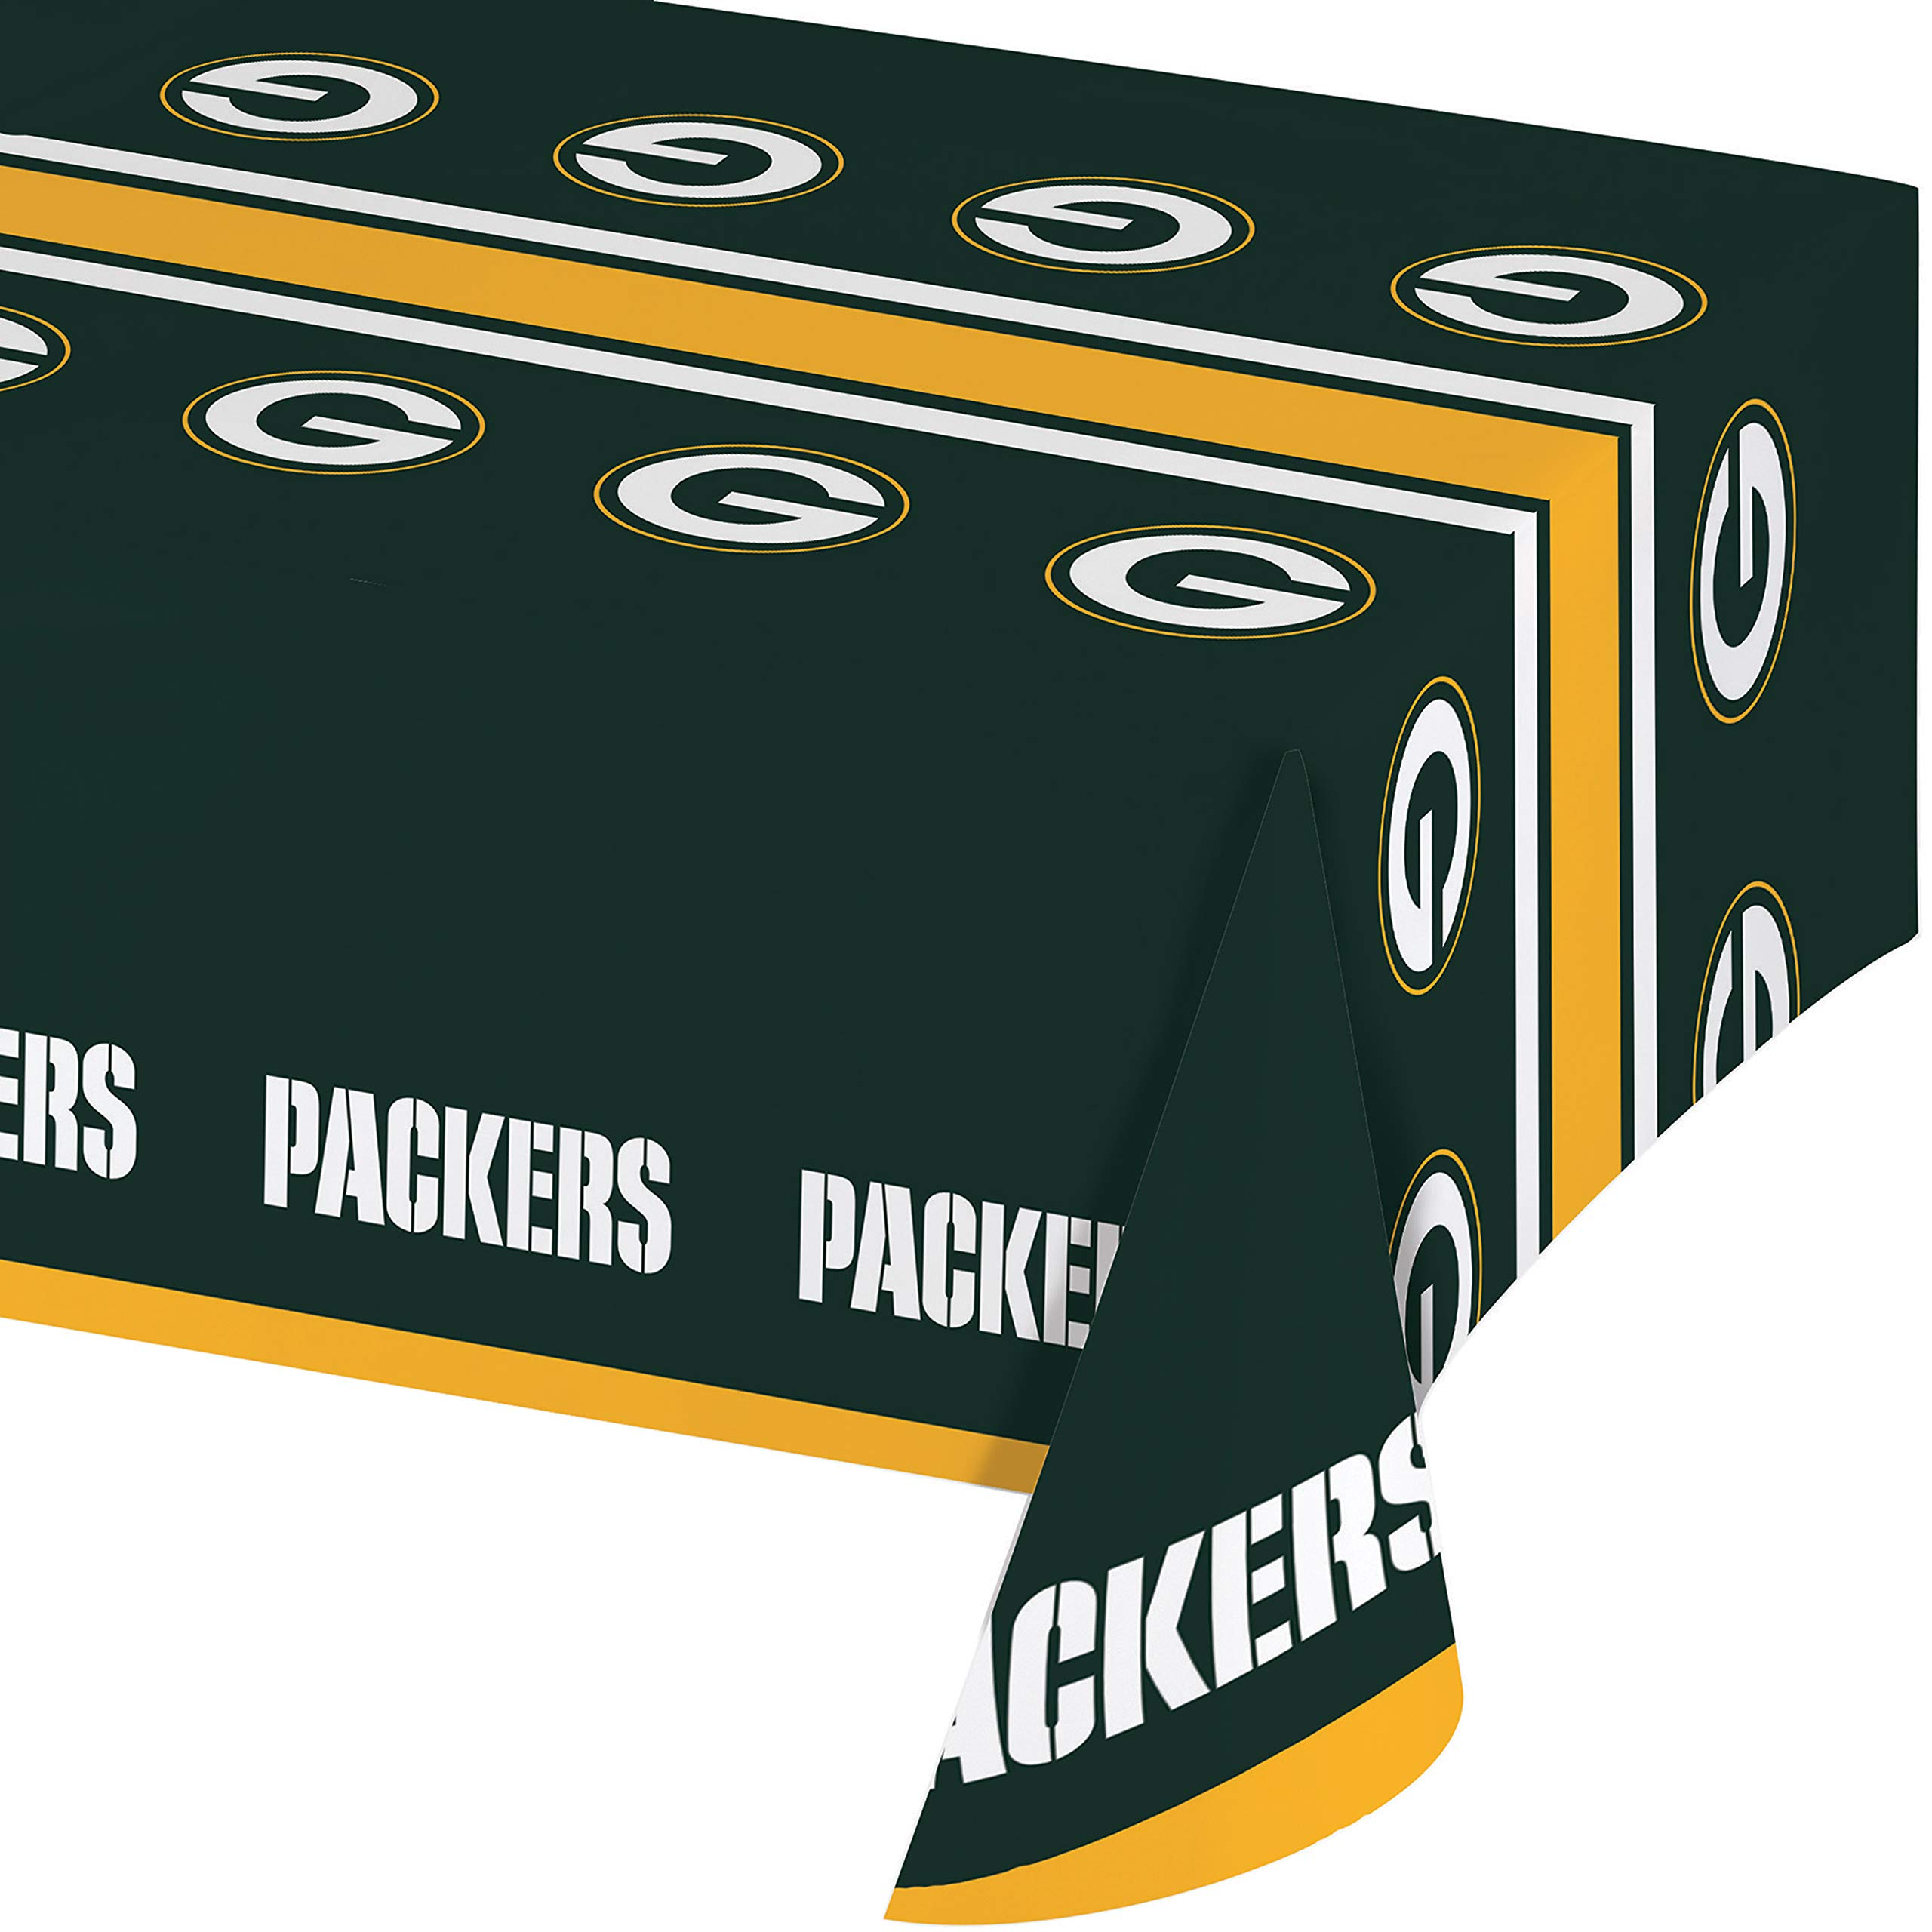 Green Bay Packers Plastic Tablecloths, 3 ct